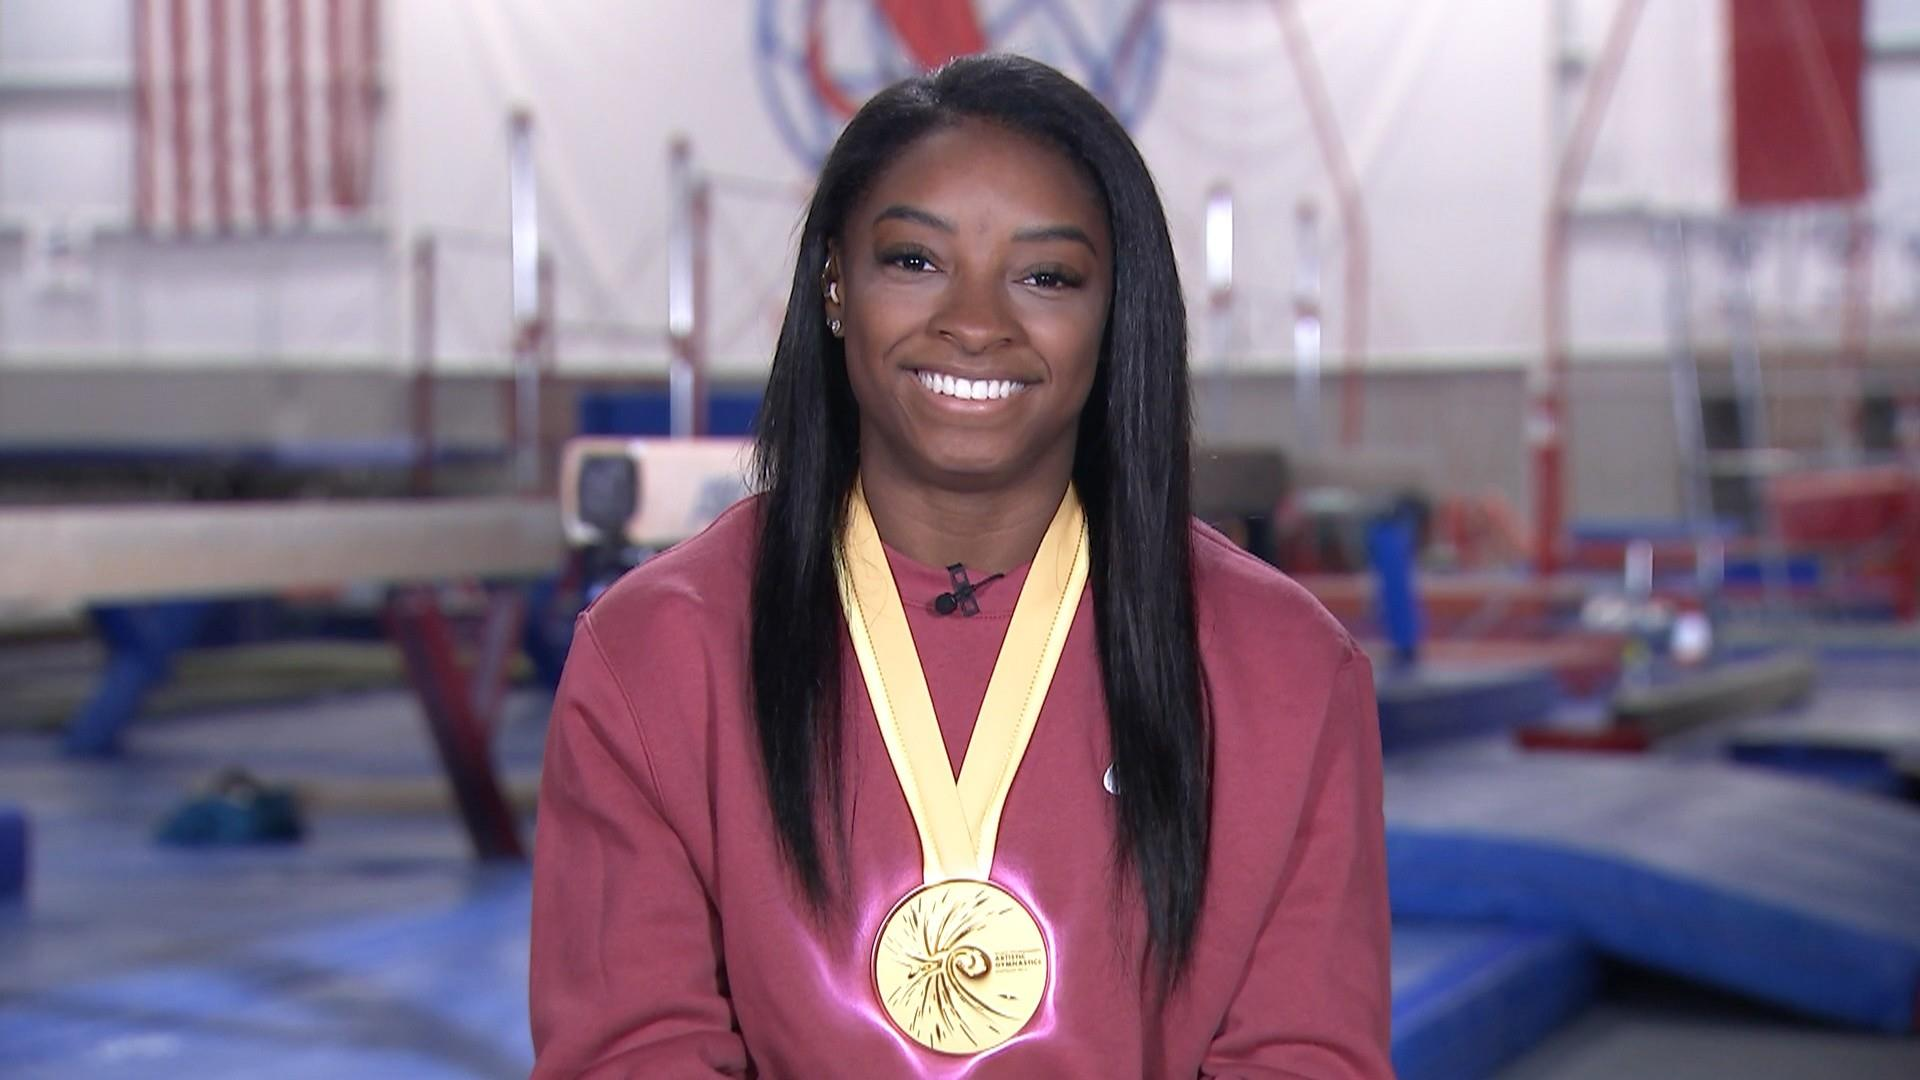 Simone Biles in 'awe' after making gymnastics history at world championships